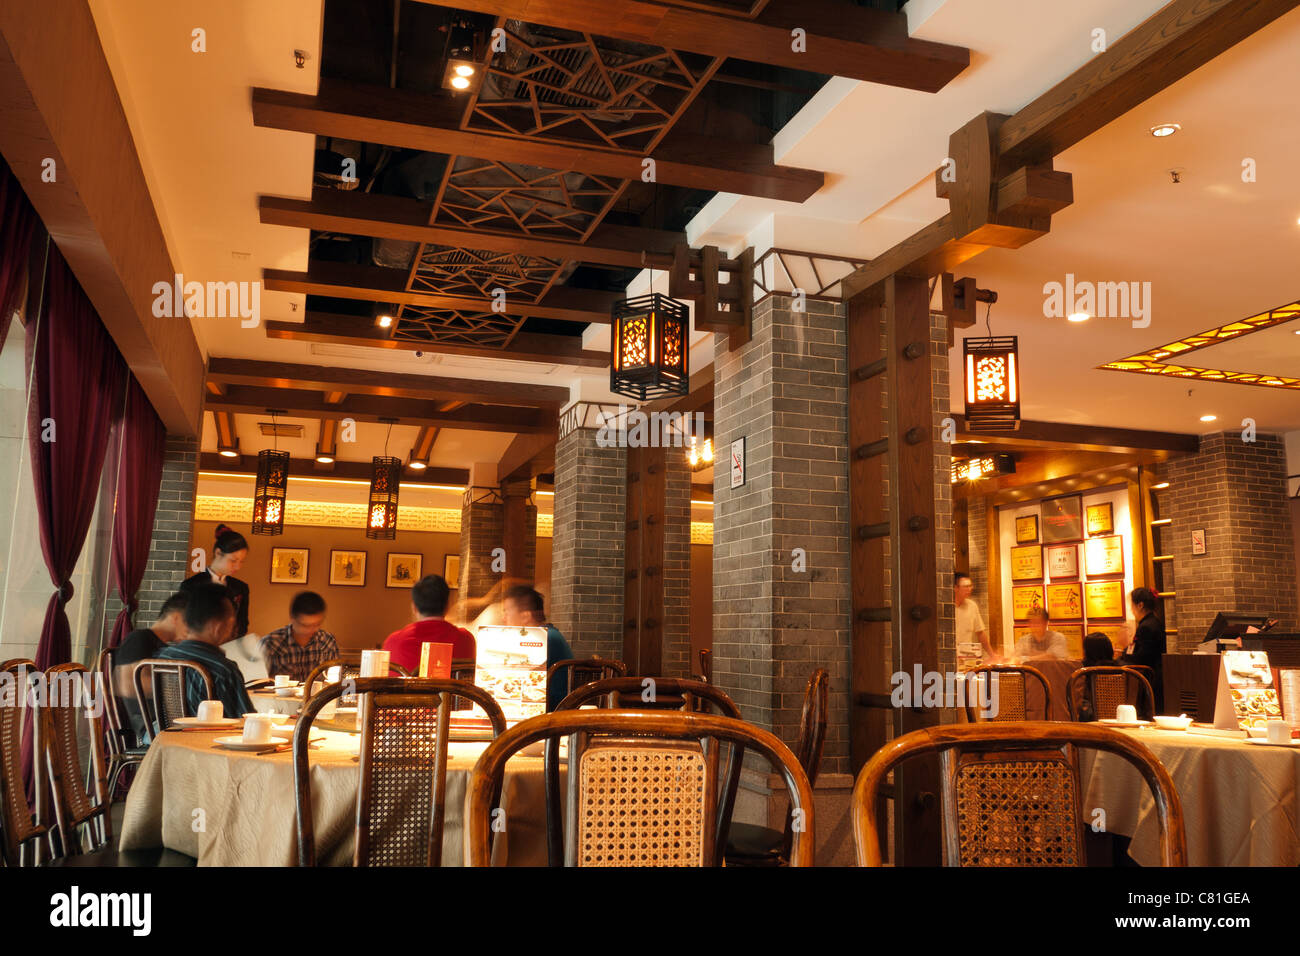 Lampion chinese stock photos lampion chinese stock - Chinese restaurant interior pictures ...